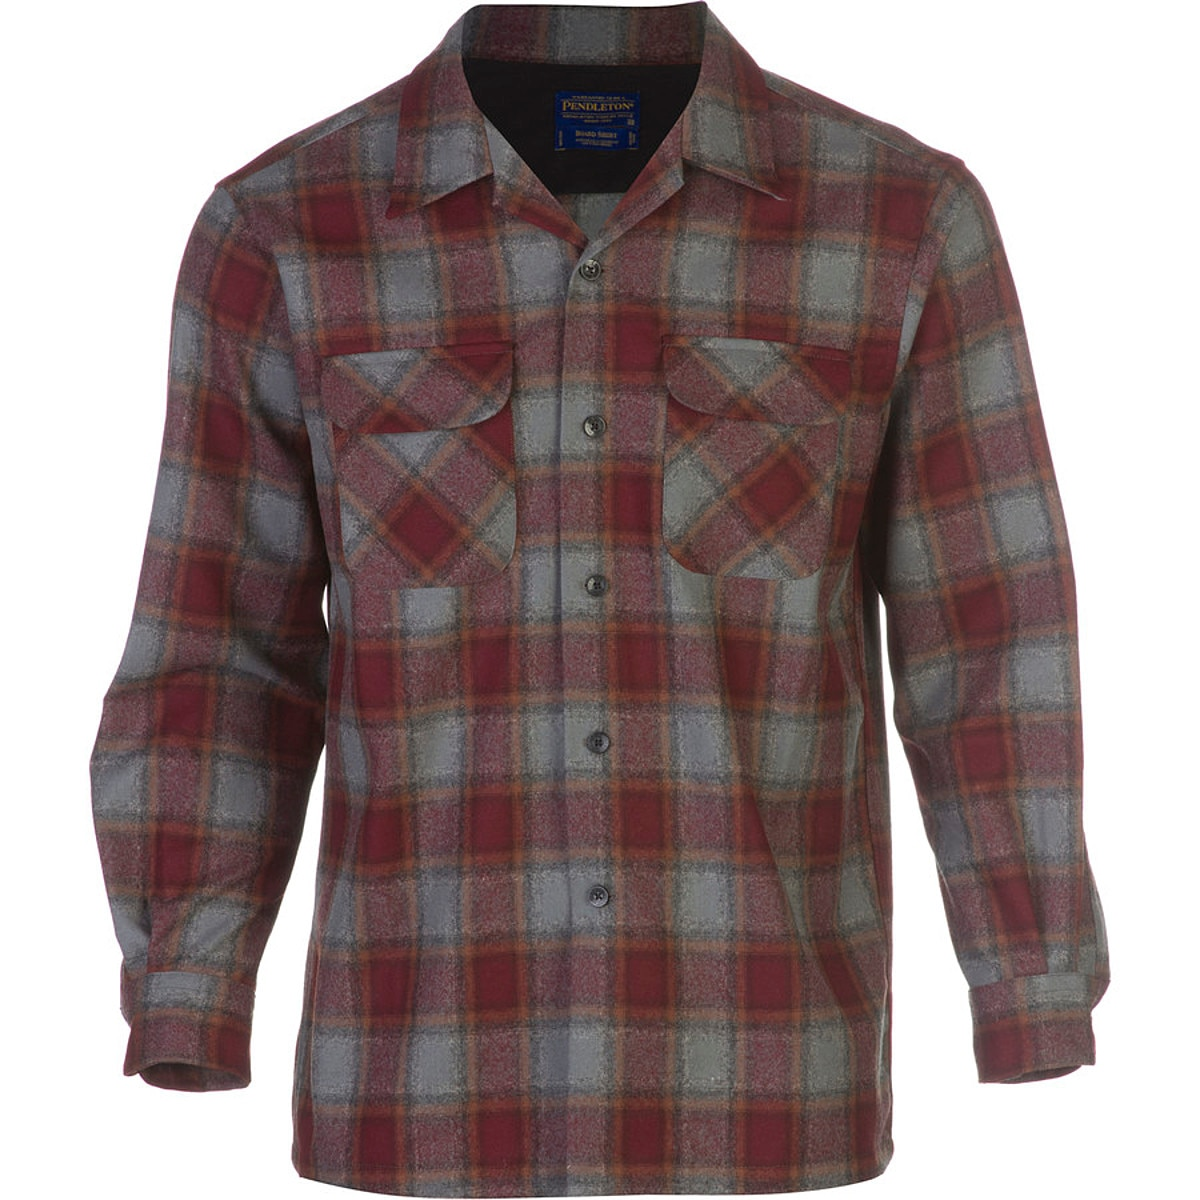 Very nice material- classic Pendleton, you can definitely dress it up with a nice pair of jeans or throw it on for a great outdoor adventure. The double pockets are a nice accent too. Sizing seems true, purchased it in his normal shirt size and it was a little roomy- not very fitted- but he wasn't swimming in /5(6).